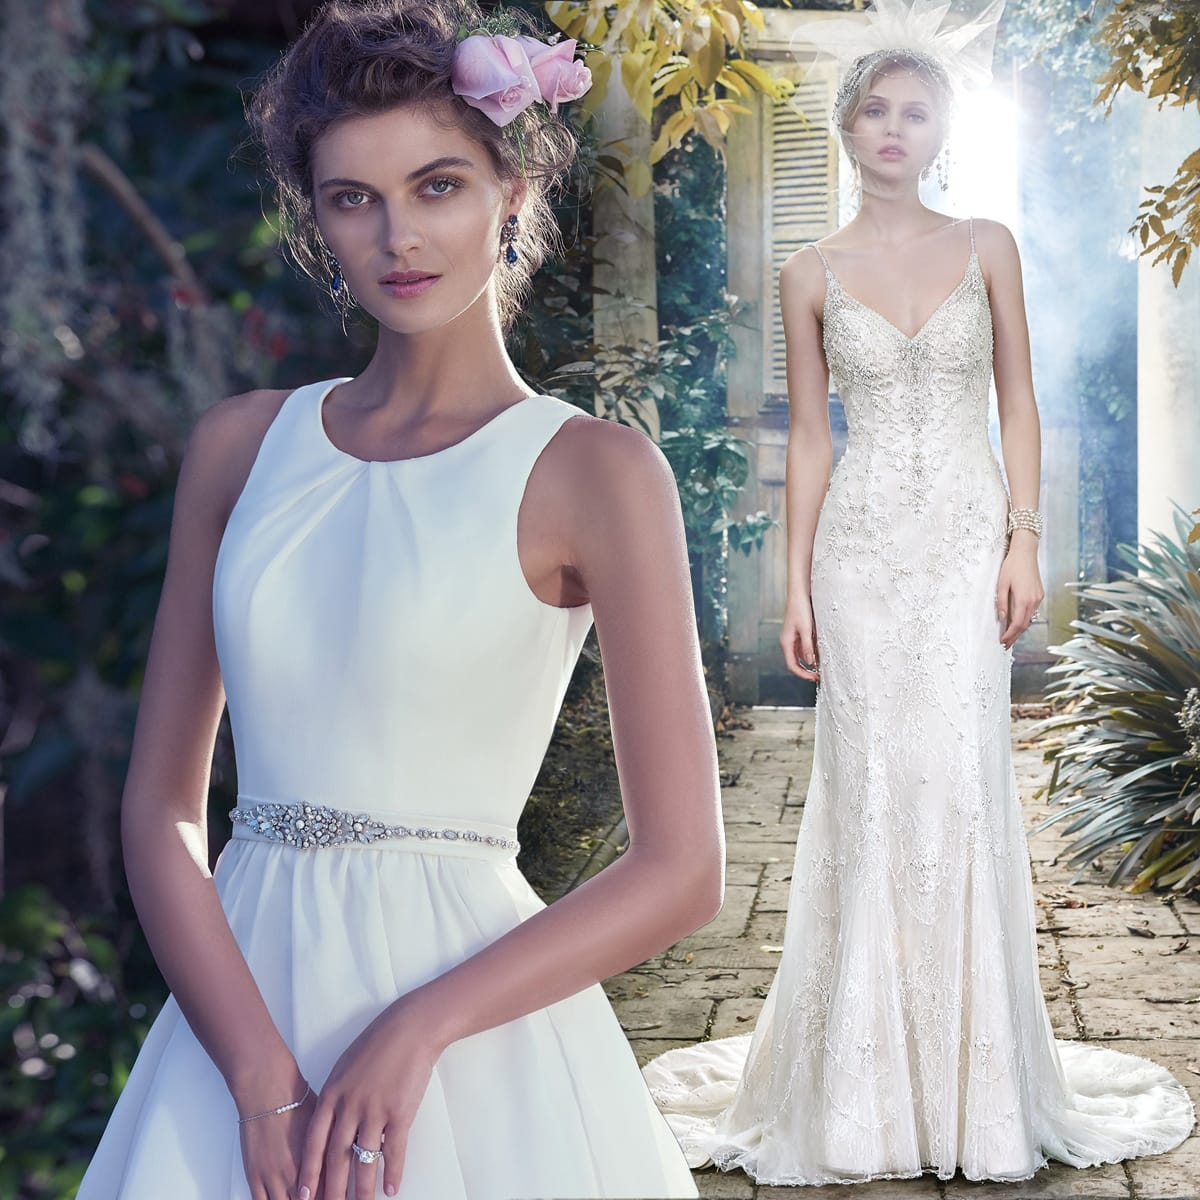 Maggie Sottero's guide to pairing your wedding dress with the perfect reception dress